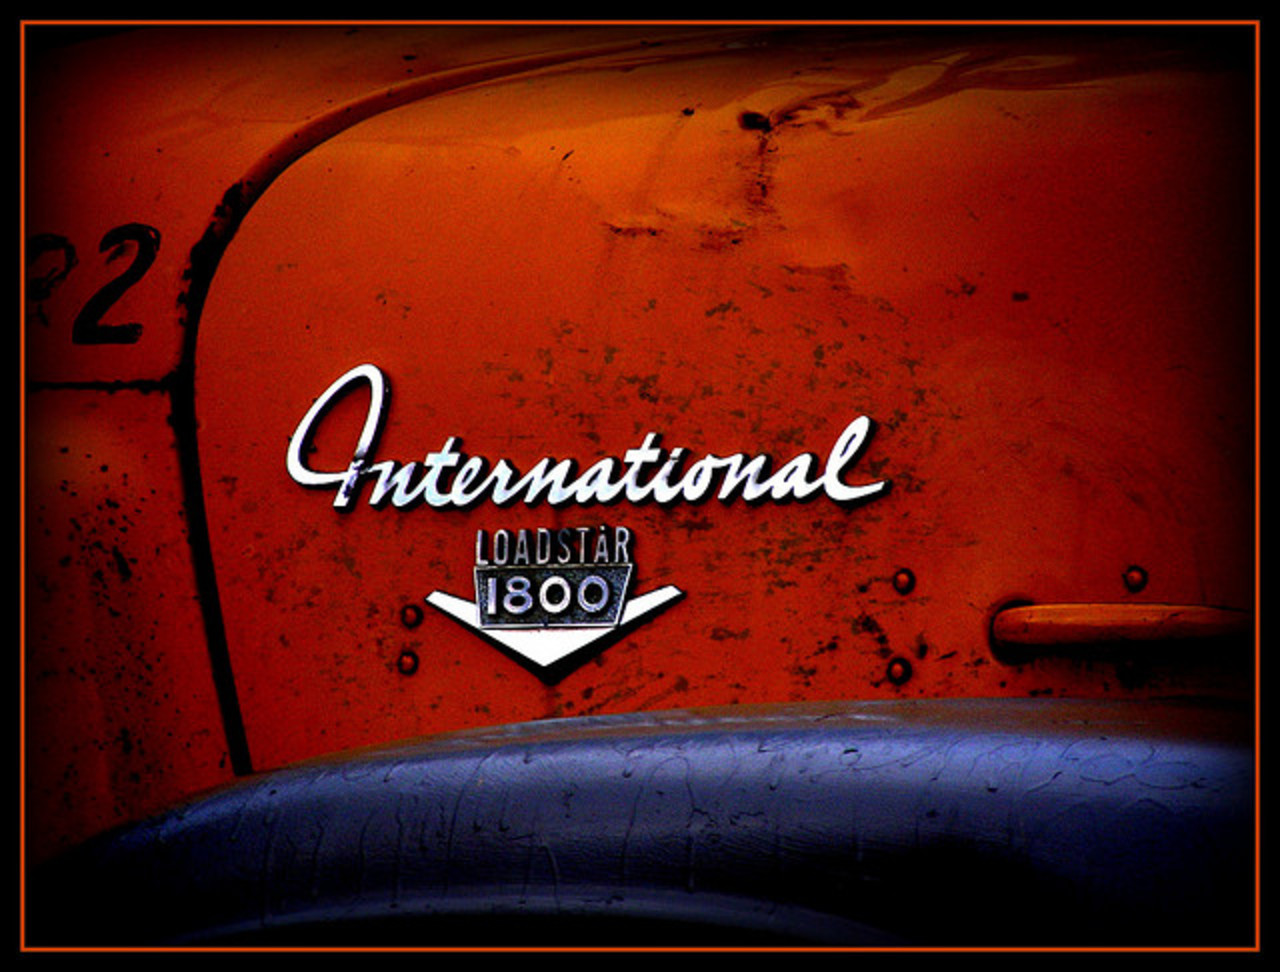 International Loadstar 1800 | Flickr - Photo Sharing!